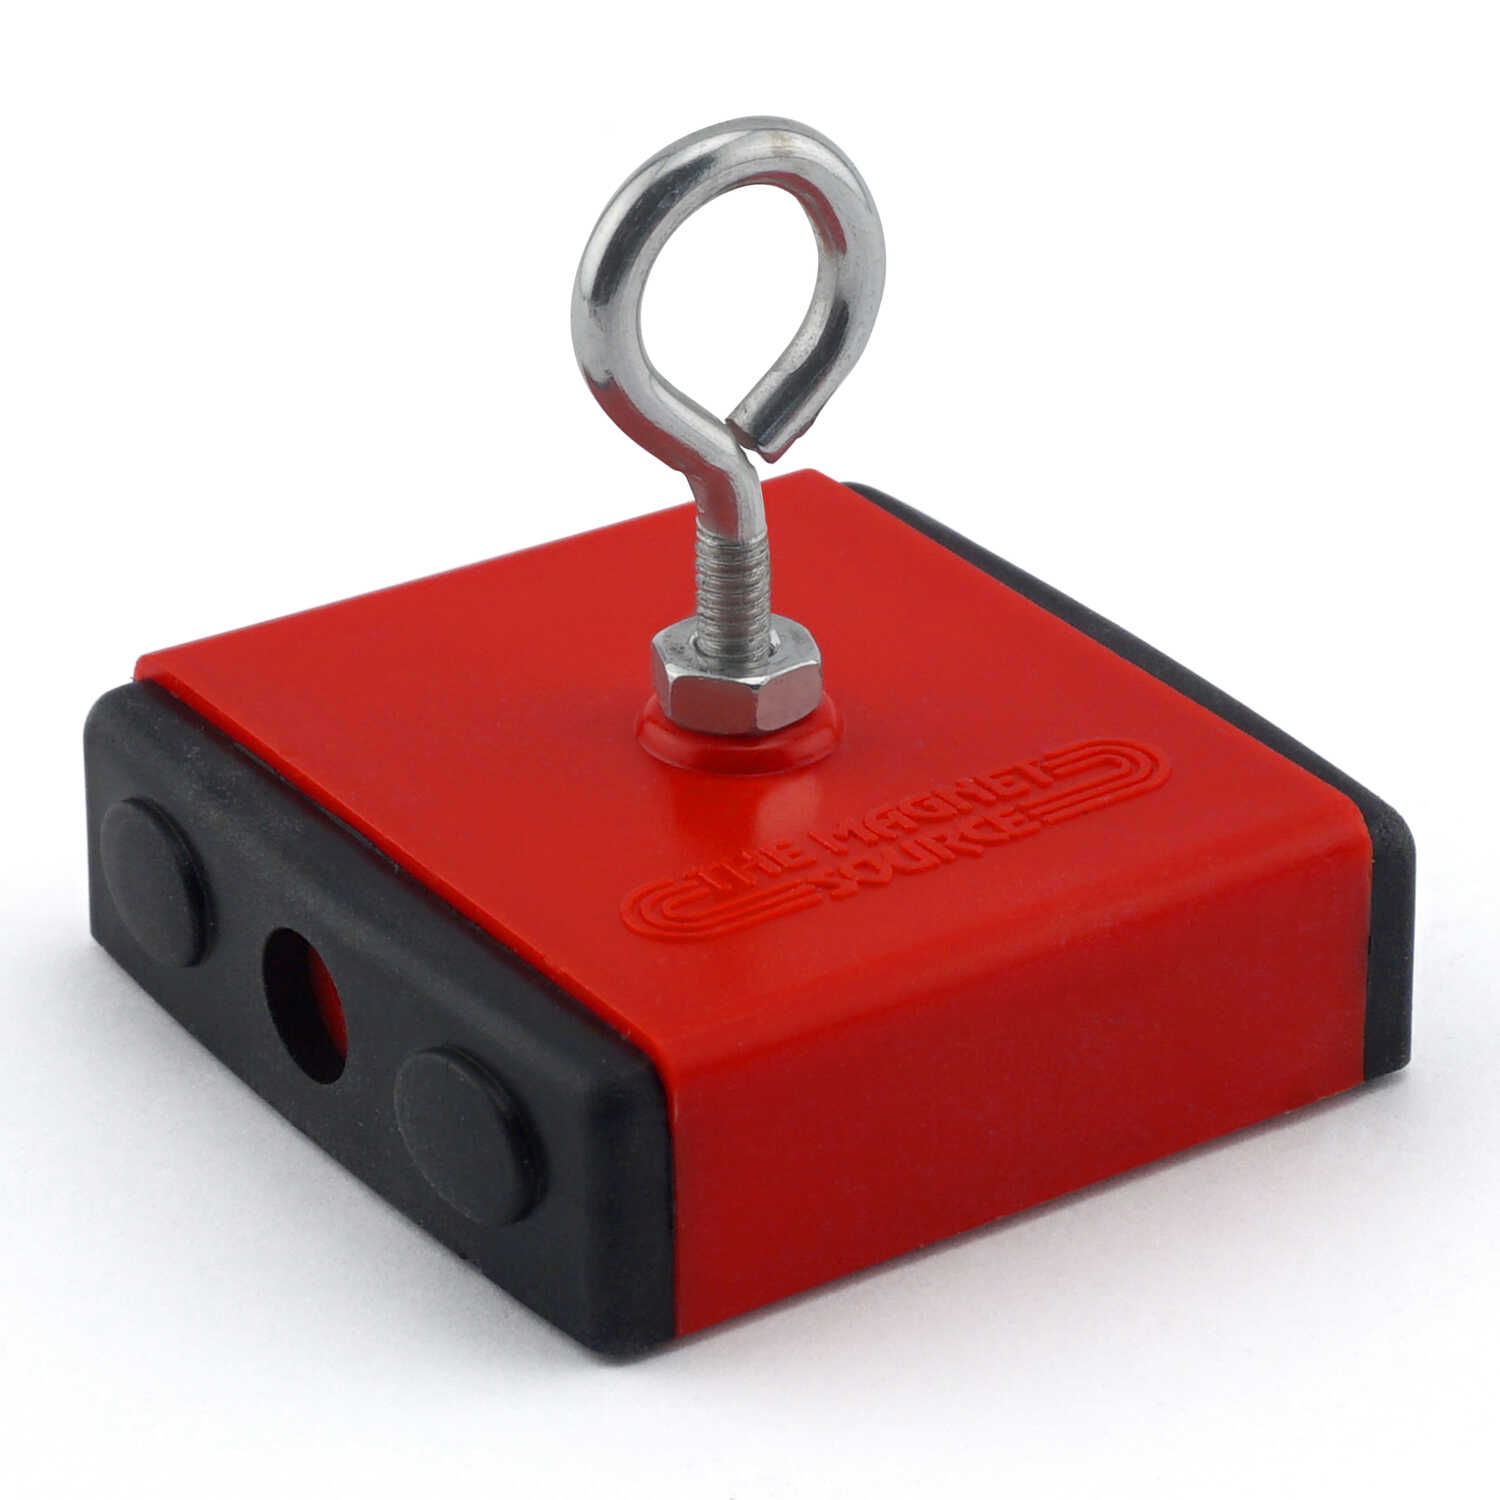 Master Magnetics  2 in. Ceramic  Retrieving Magnet  40 lb. pull 3.4 MGOe Red  1 pc.